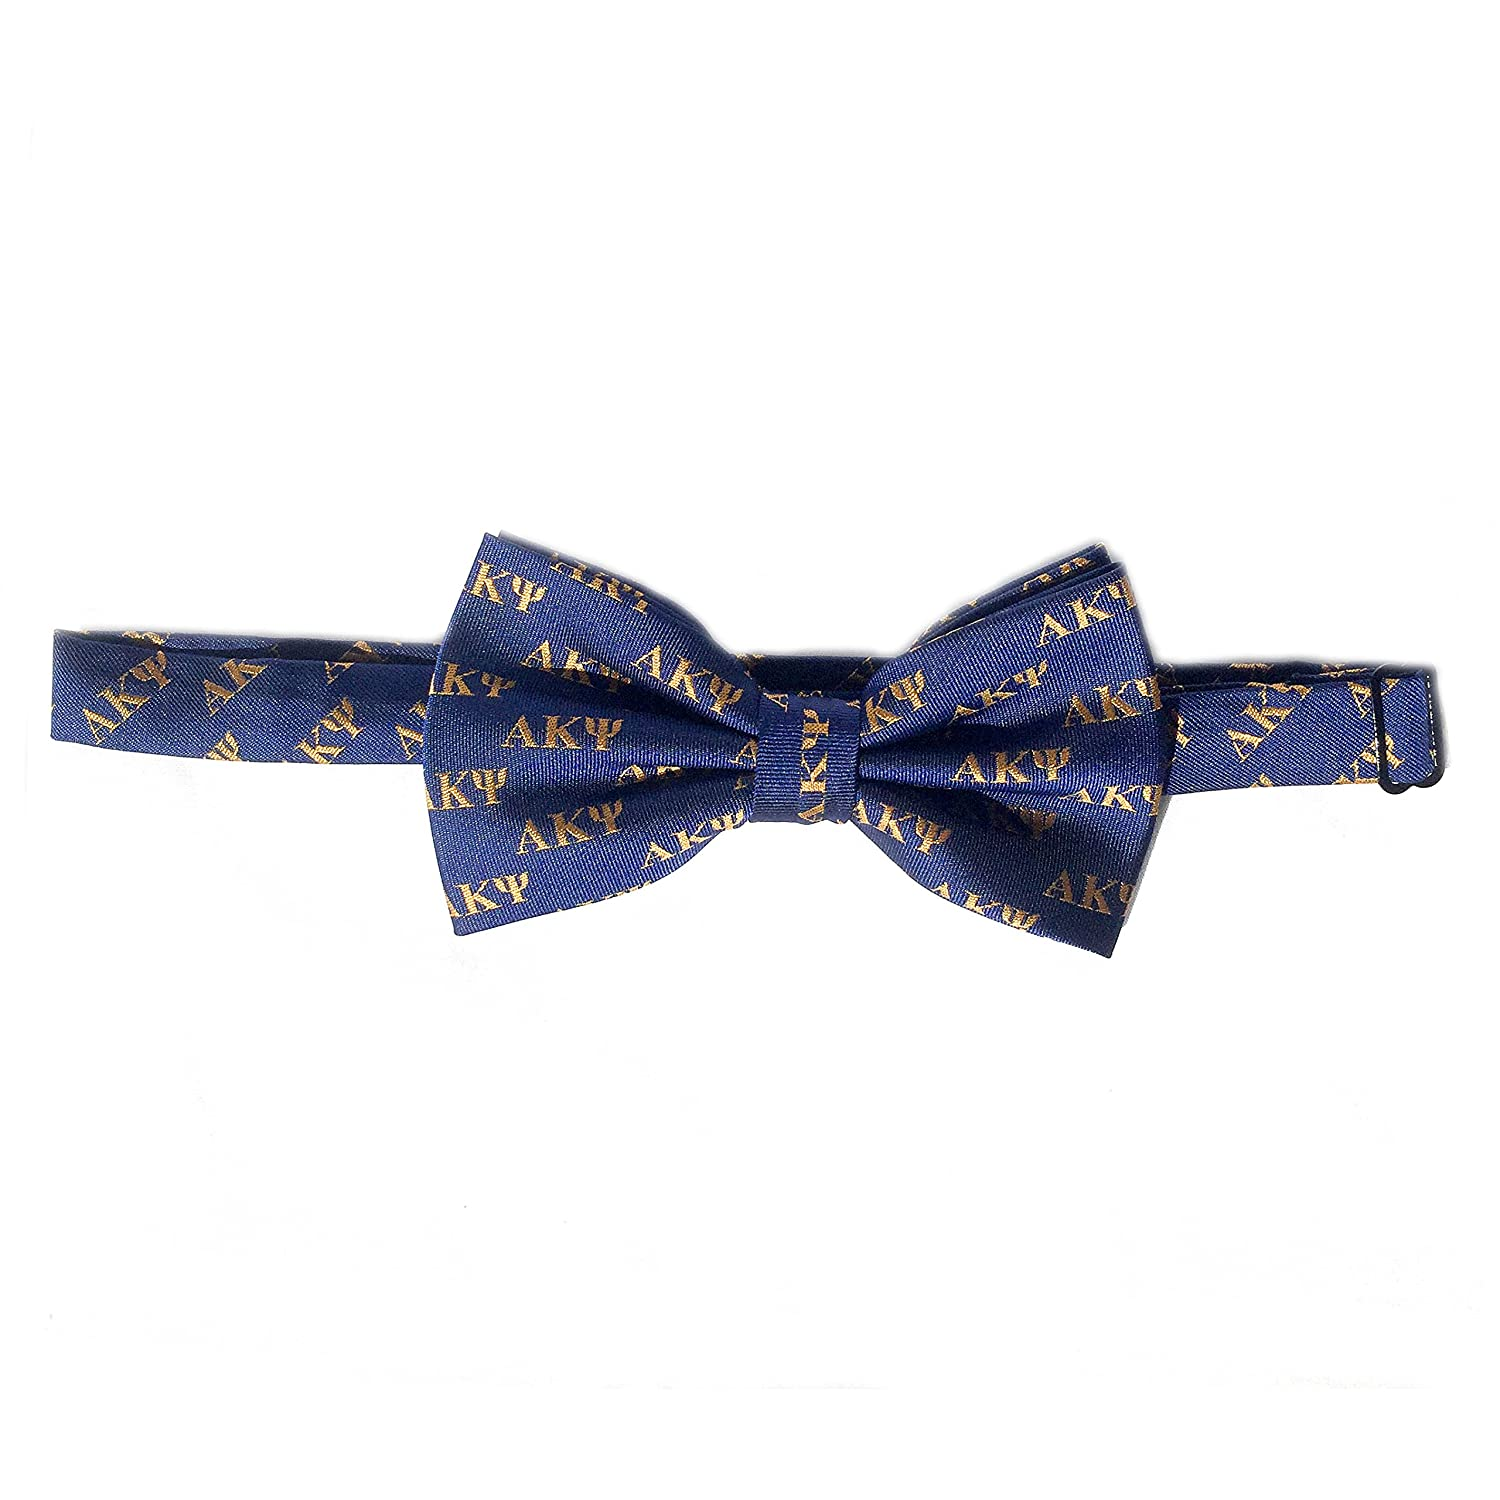 Alpha Kappa Psi Pre-Tied Bow Tie Fraternity Greek Formal Occasion Standard Length Width AKPsi Pre-Tied Letter Bow Tie